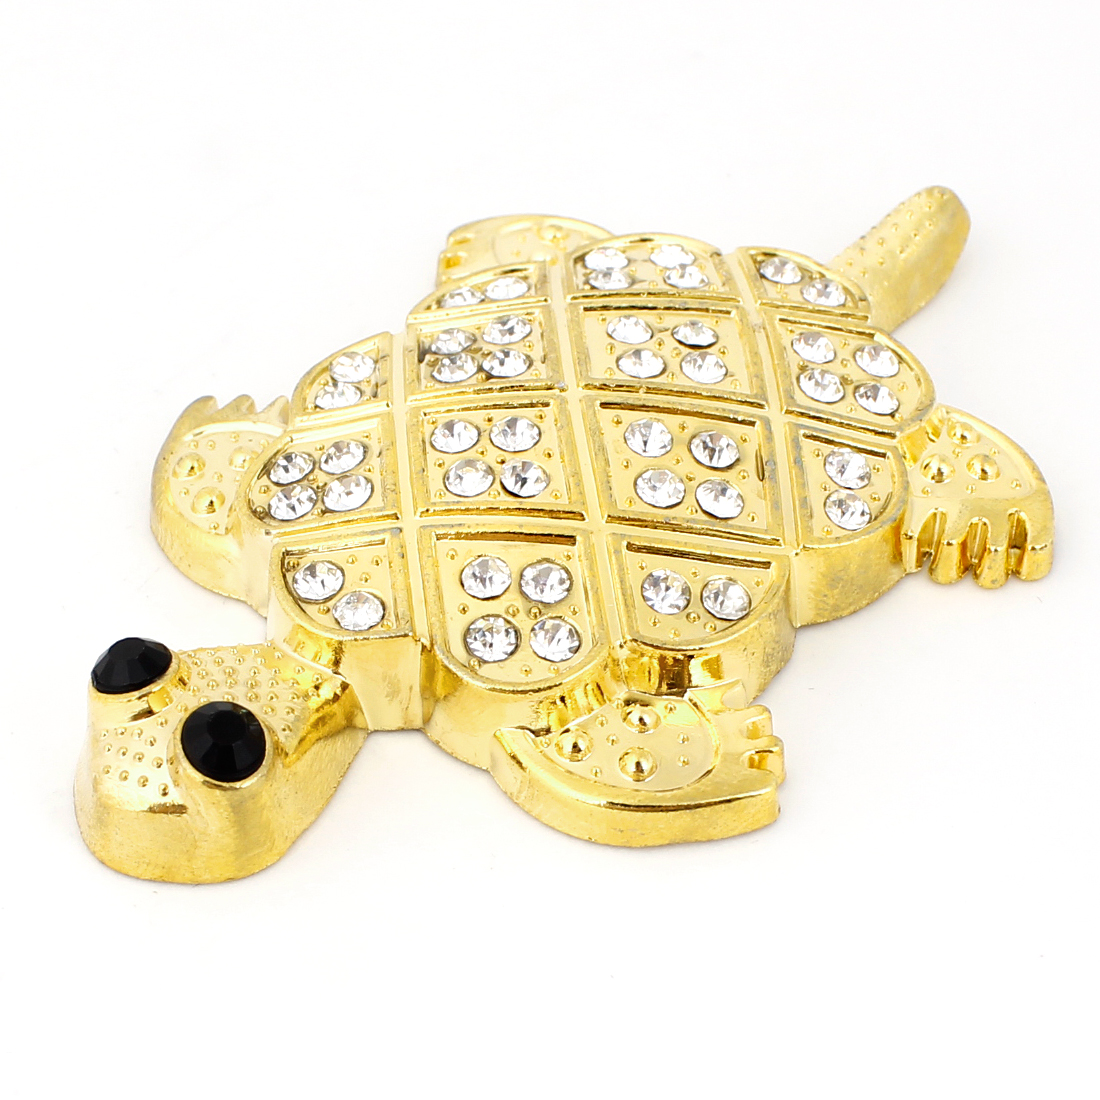 Faux Rhinestone Decor Tortoise Shaped Sticker Badge Gold Tone for Auto